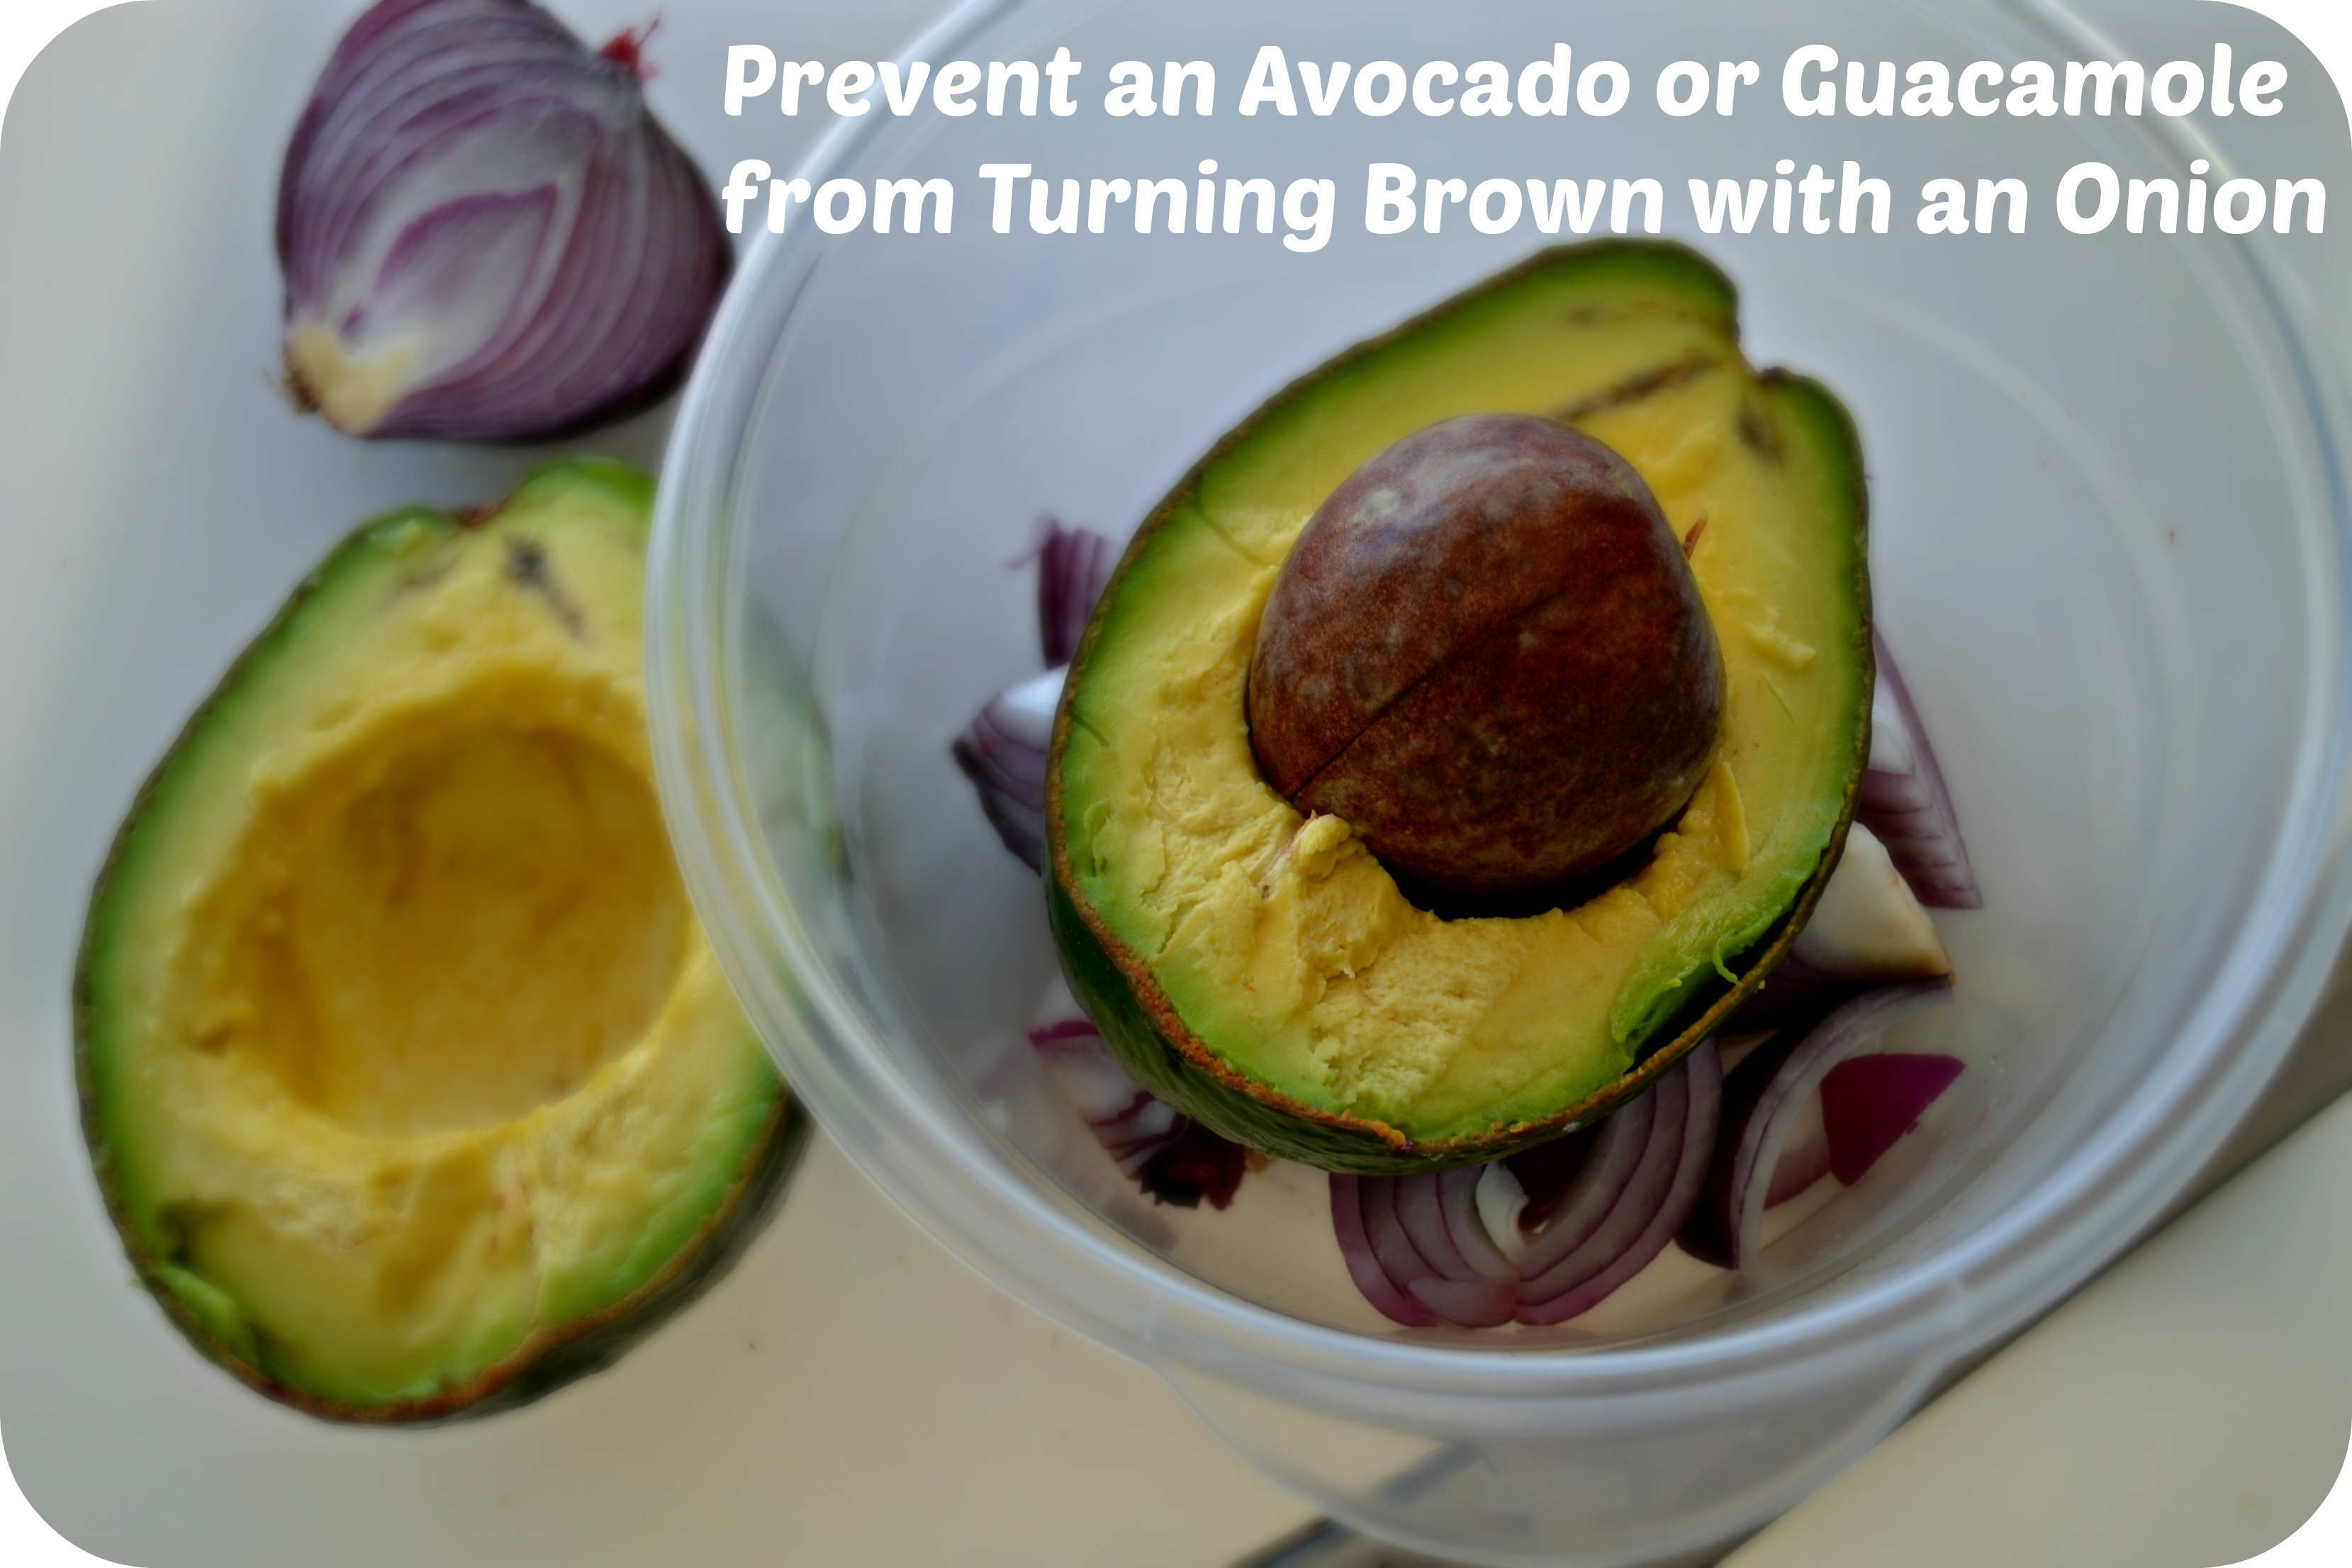 Prevent an Avocado From Turning Brown